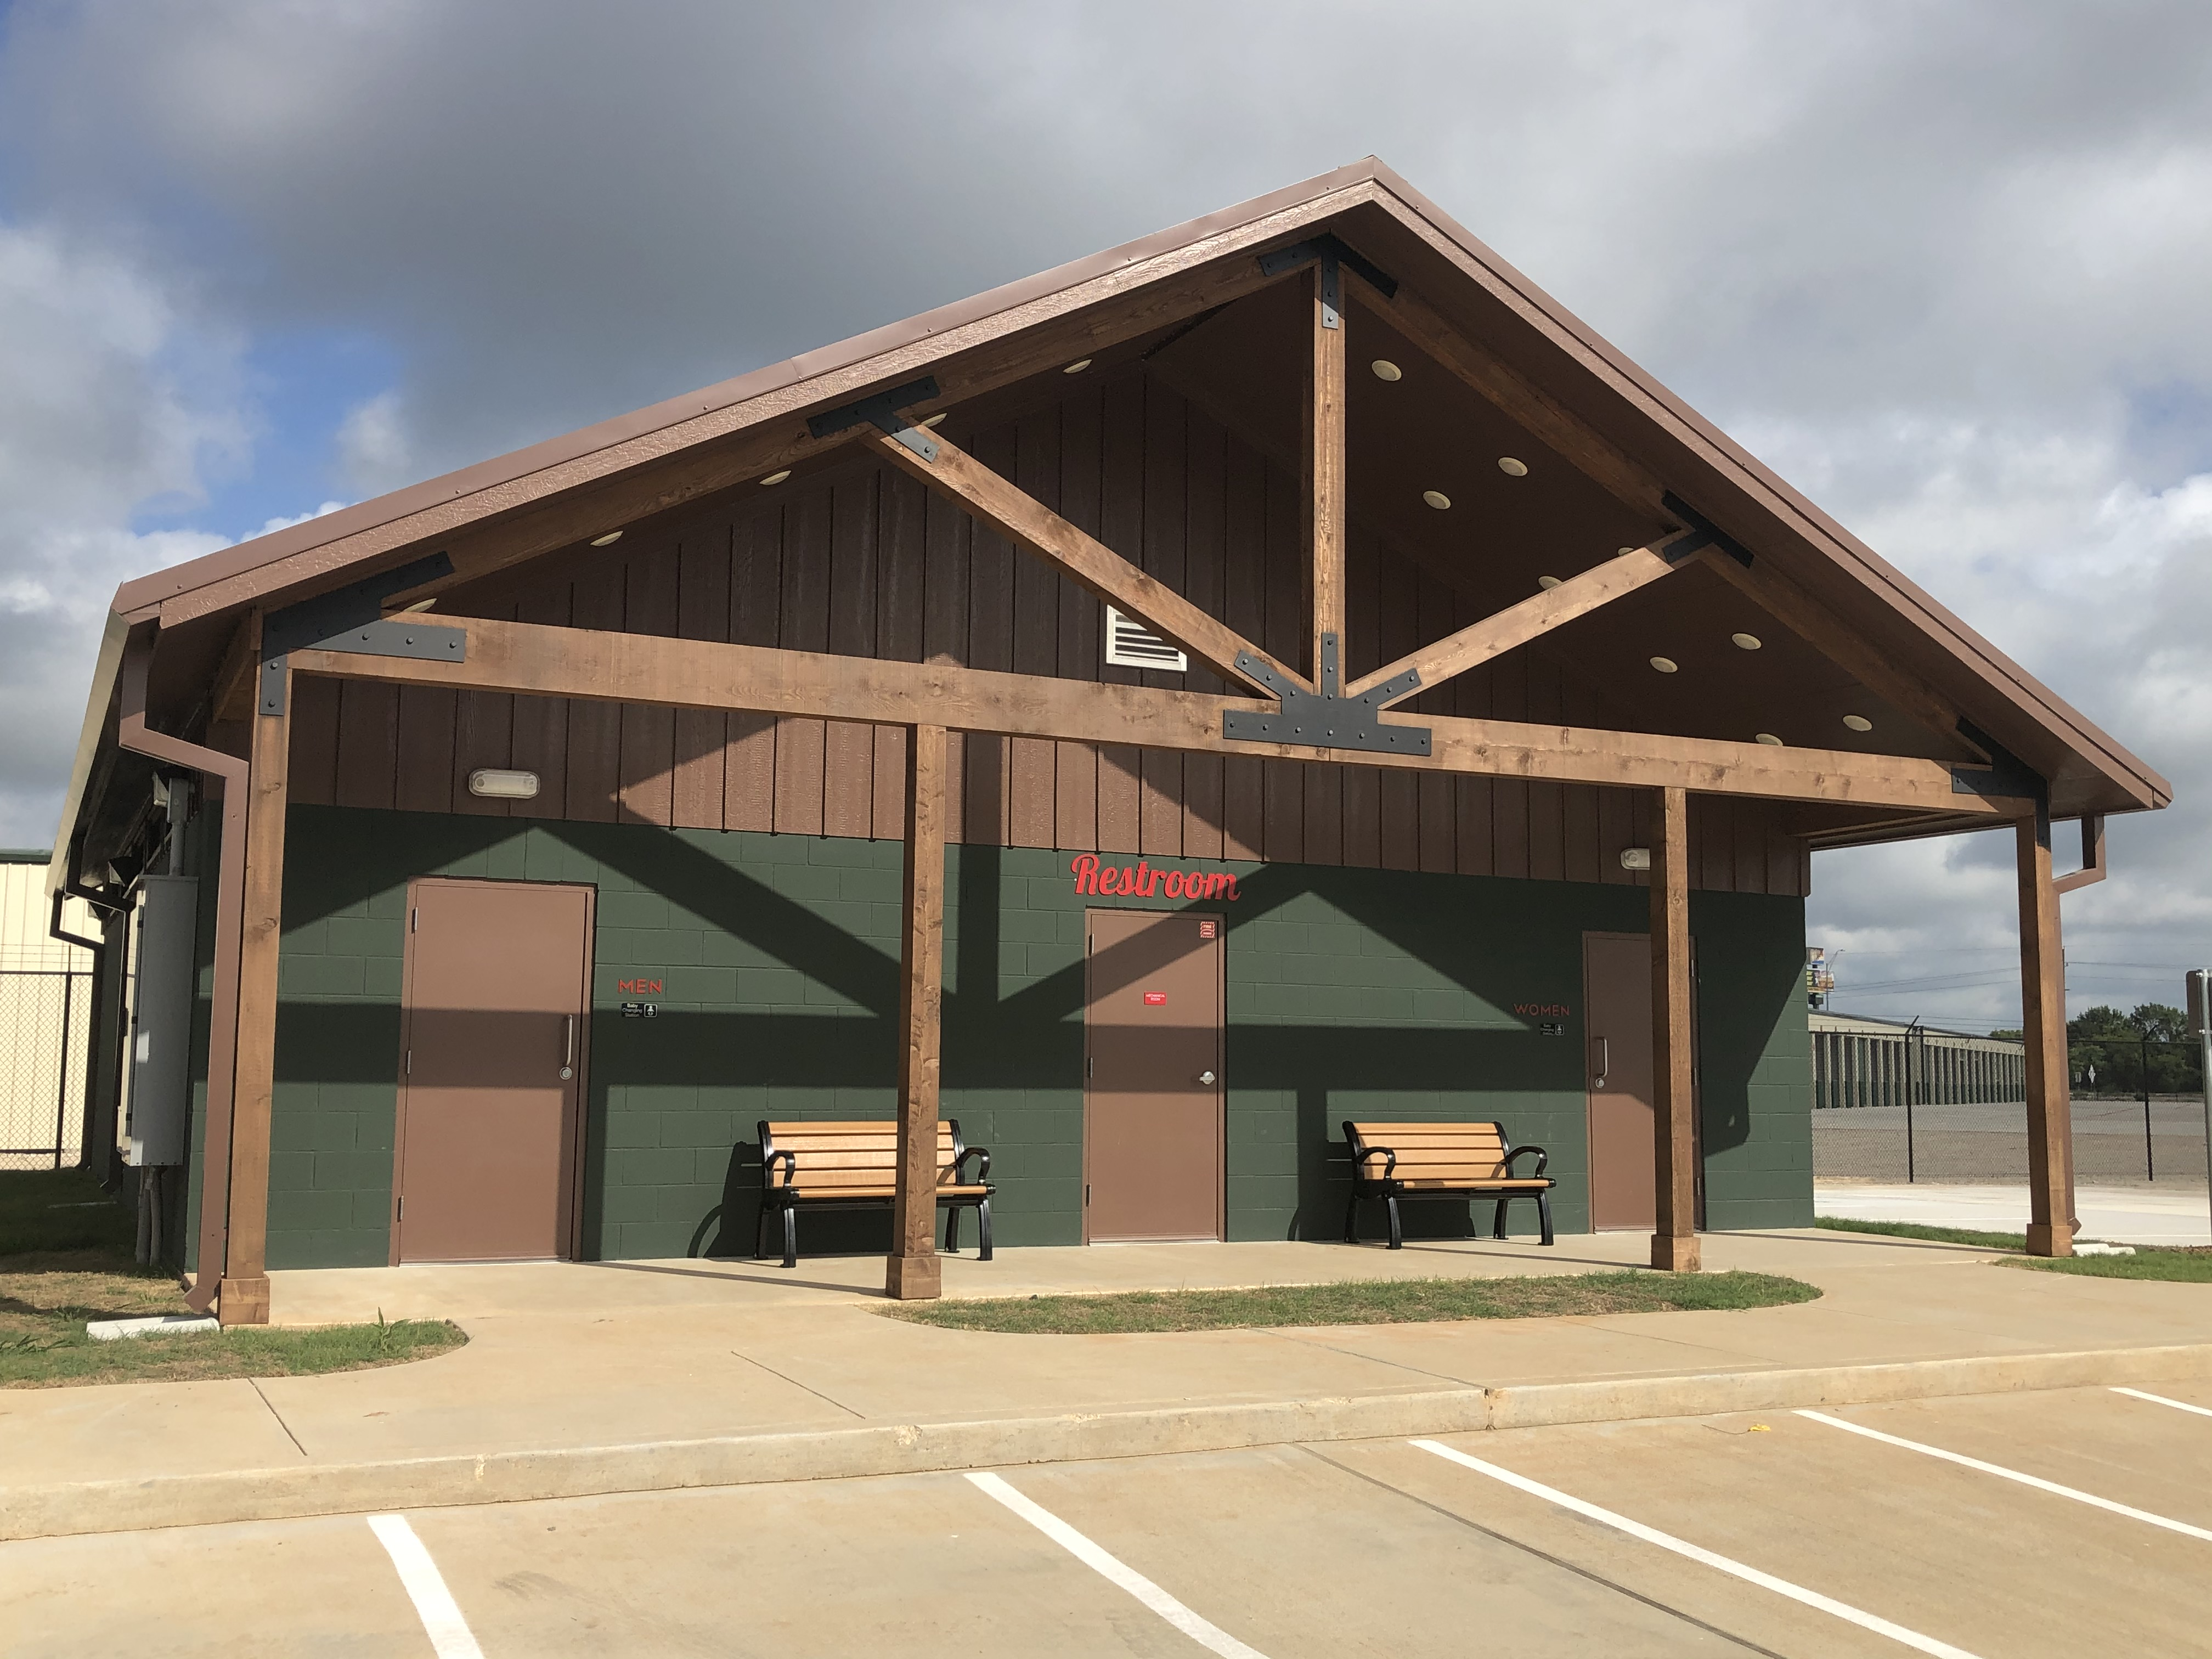 Restrooms available at Kathy's Kampground in Sealy, TX